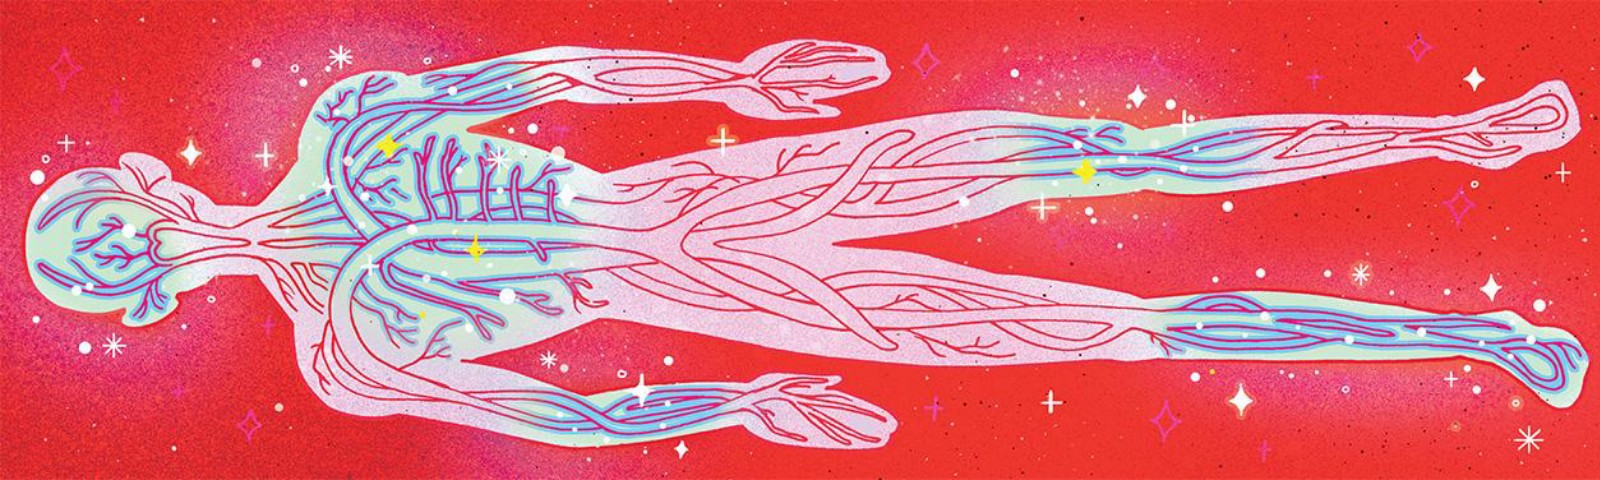 An illustration of veins inside a transparent human body on a red background.